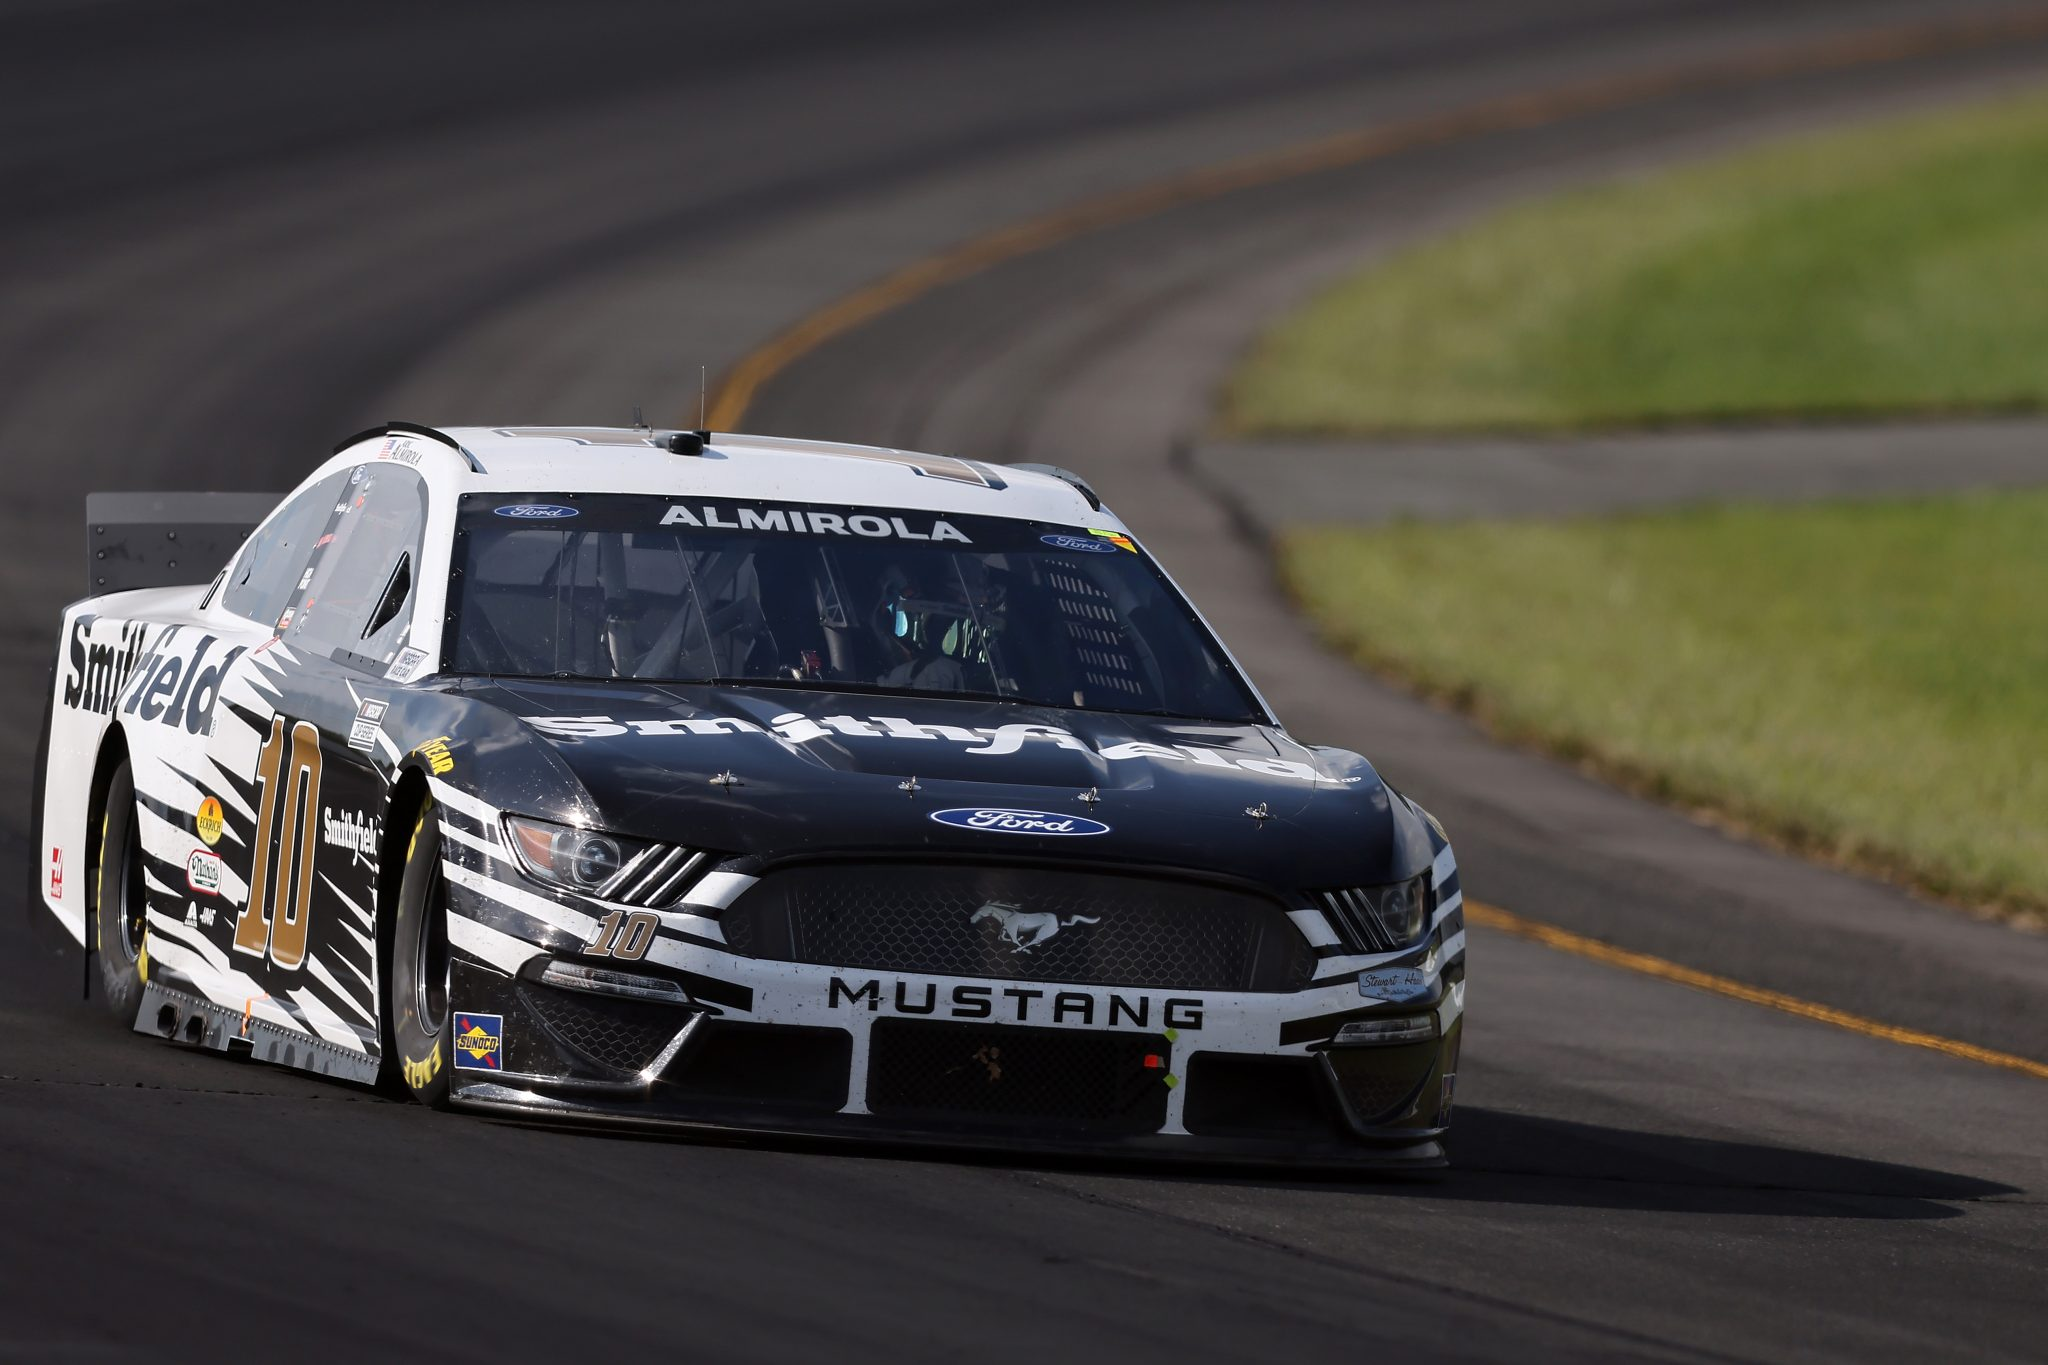 LONG POND, PENNSYLVANIA - JUNE 27: Aric Almirola, driver of the #10 Smithfield Ford, drives during the NASCAR Cup Series Explore the Pocono Mountains 350 at Pocono Raceway on June 27, 2021 in Long Pond, Pennsylvania. (Photo by James Gilbert/Getty Images) | Getty Images